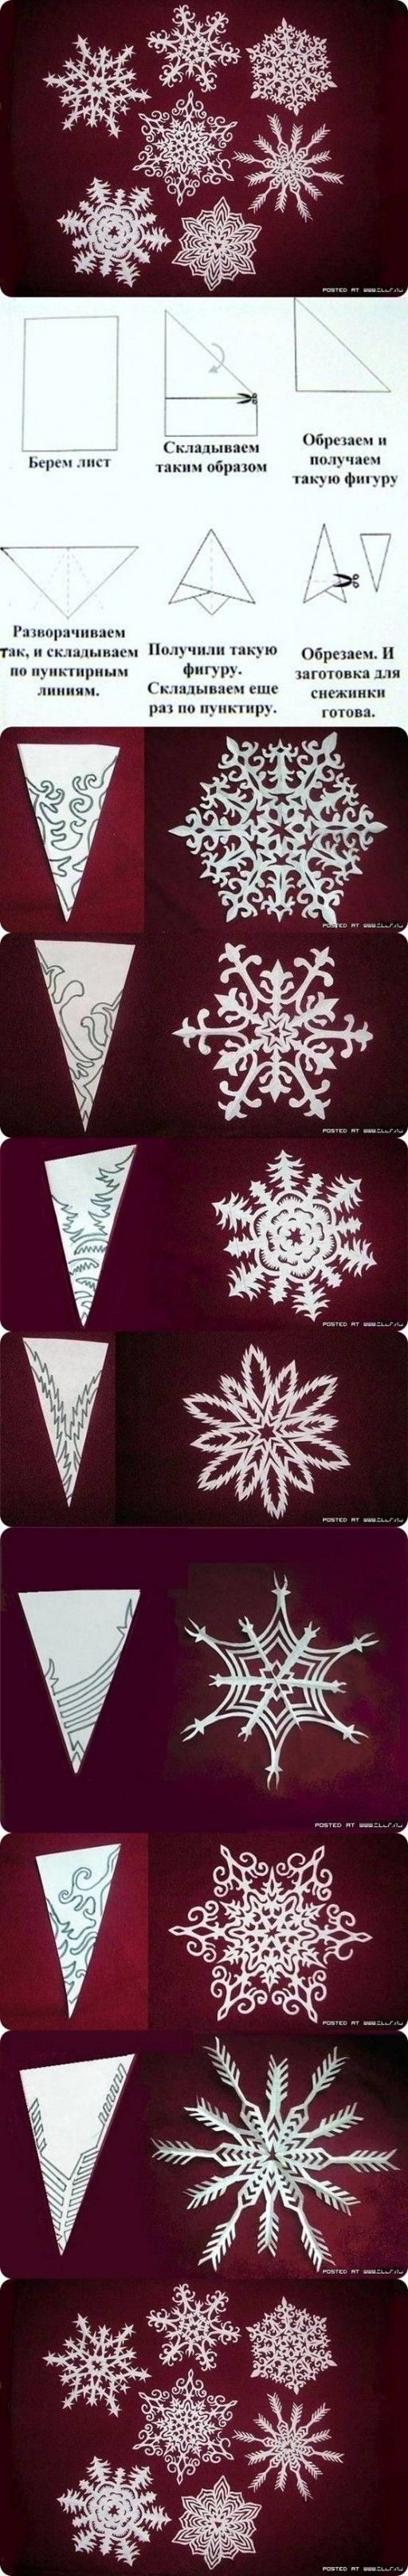 How to make Snowflakes of Paper step by step DIY tutorial instructions, How to, how to do, diy instructions, crafts, do it yourself, diy web by Mary Smith fSesz